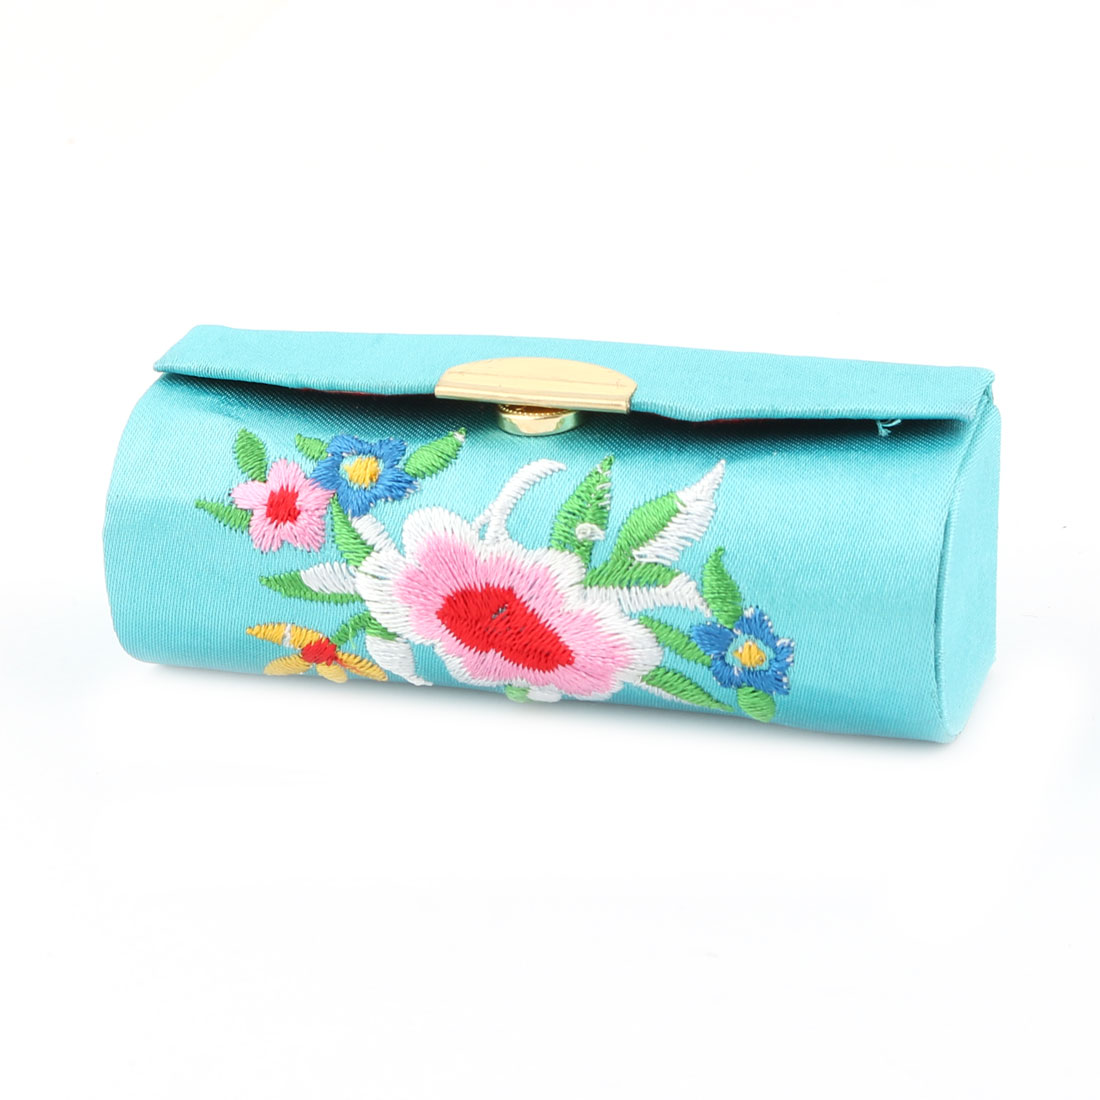 Lady Embroidery Floral Pattern Lipstick Lip Chap Stick Storage Case Jewelry Holder Box Blue